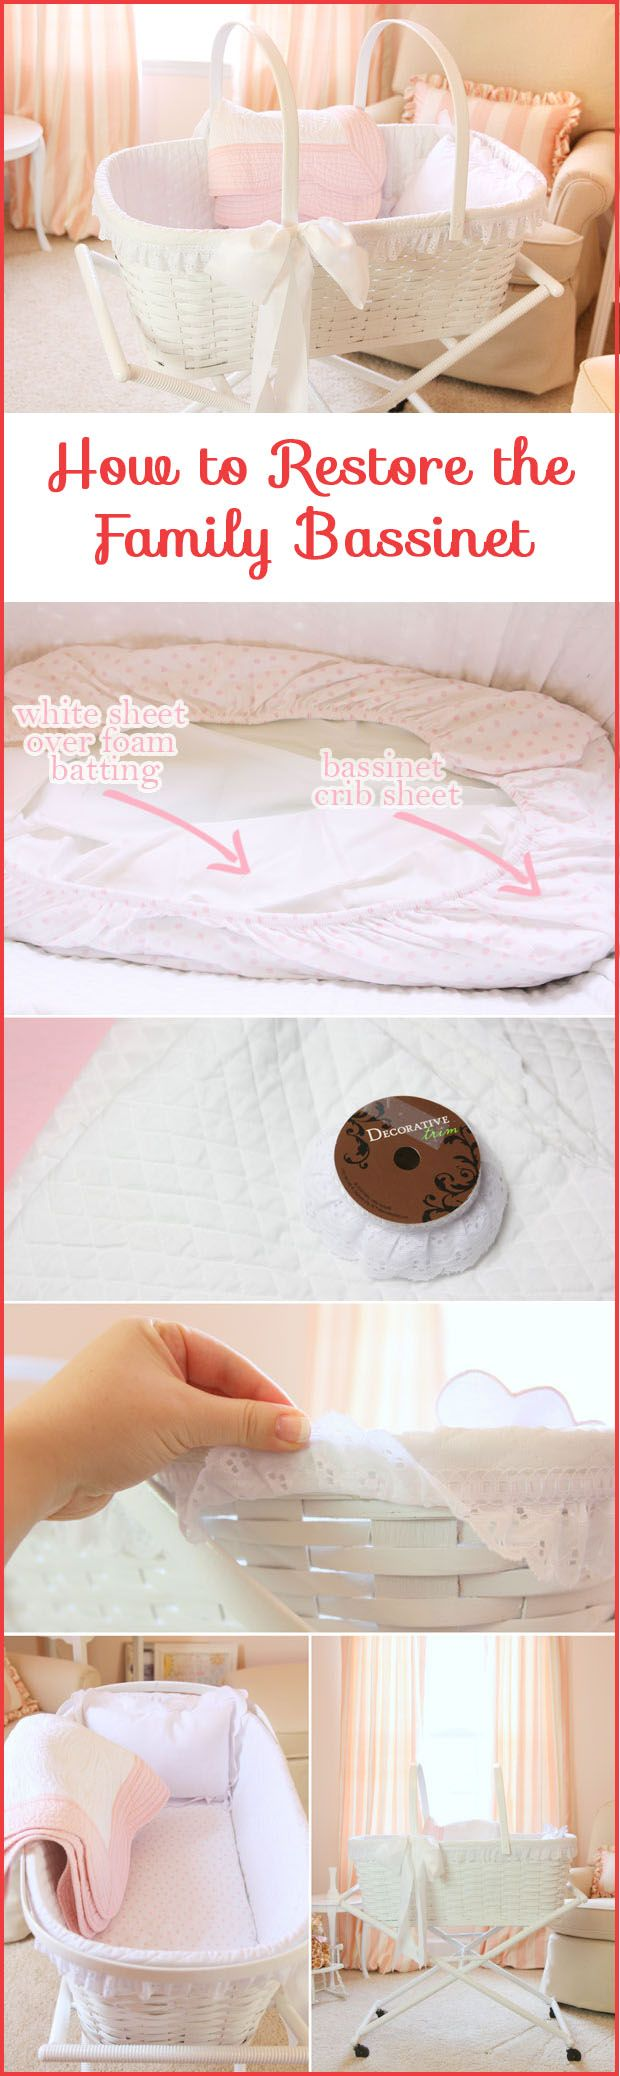 @Courtney Baker Baker Whitmore {Pizzazzerie.com} shares how she restored her 100 year old family bassinet. #DIY